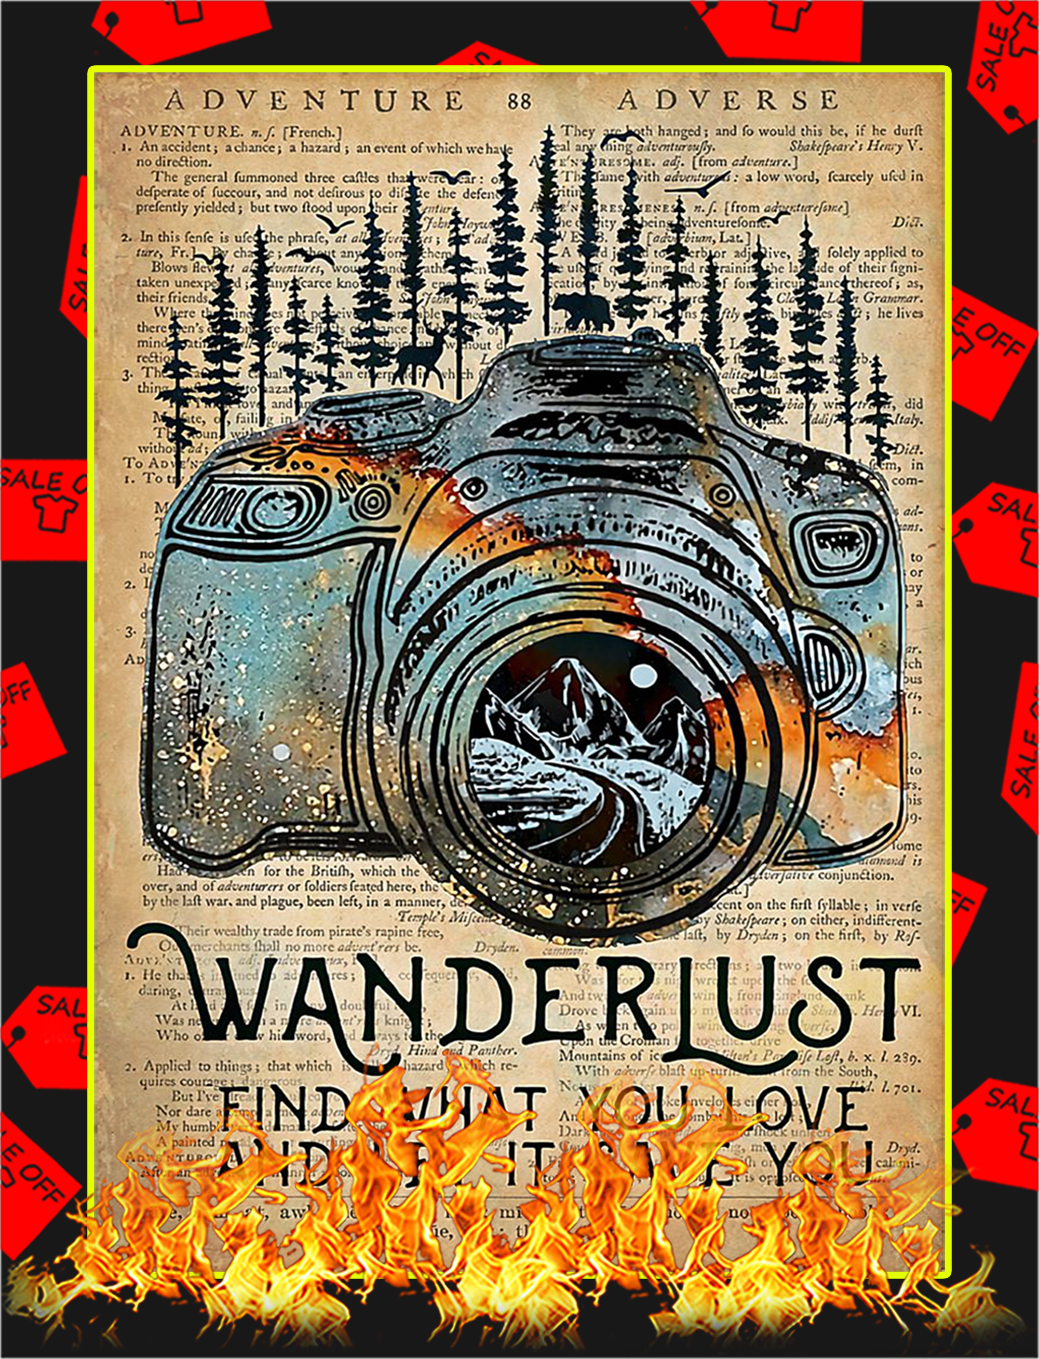 Camera Wanderlust find what you love poster - A1